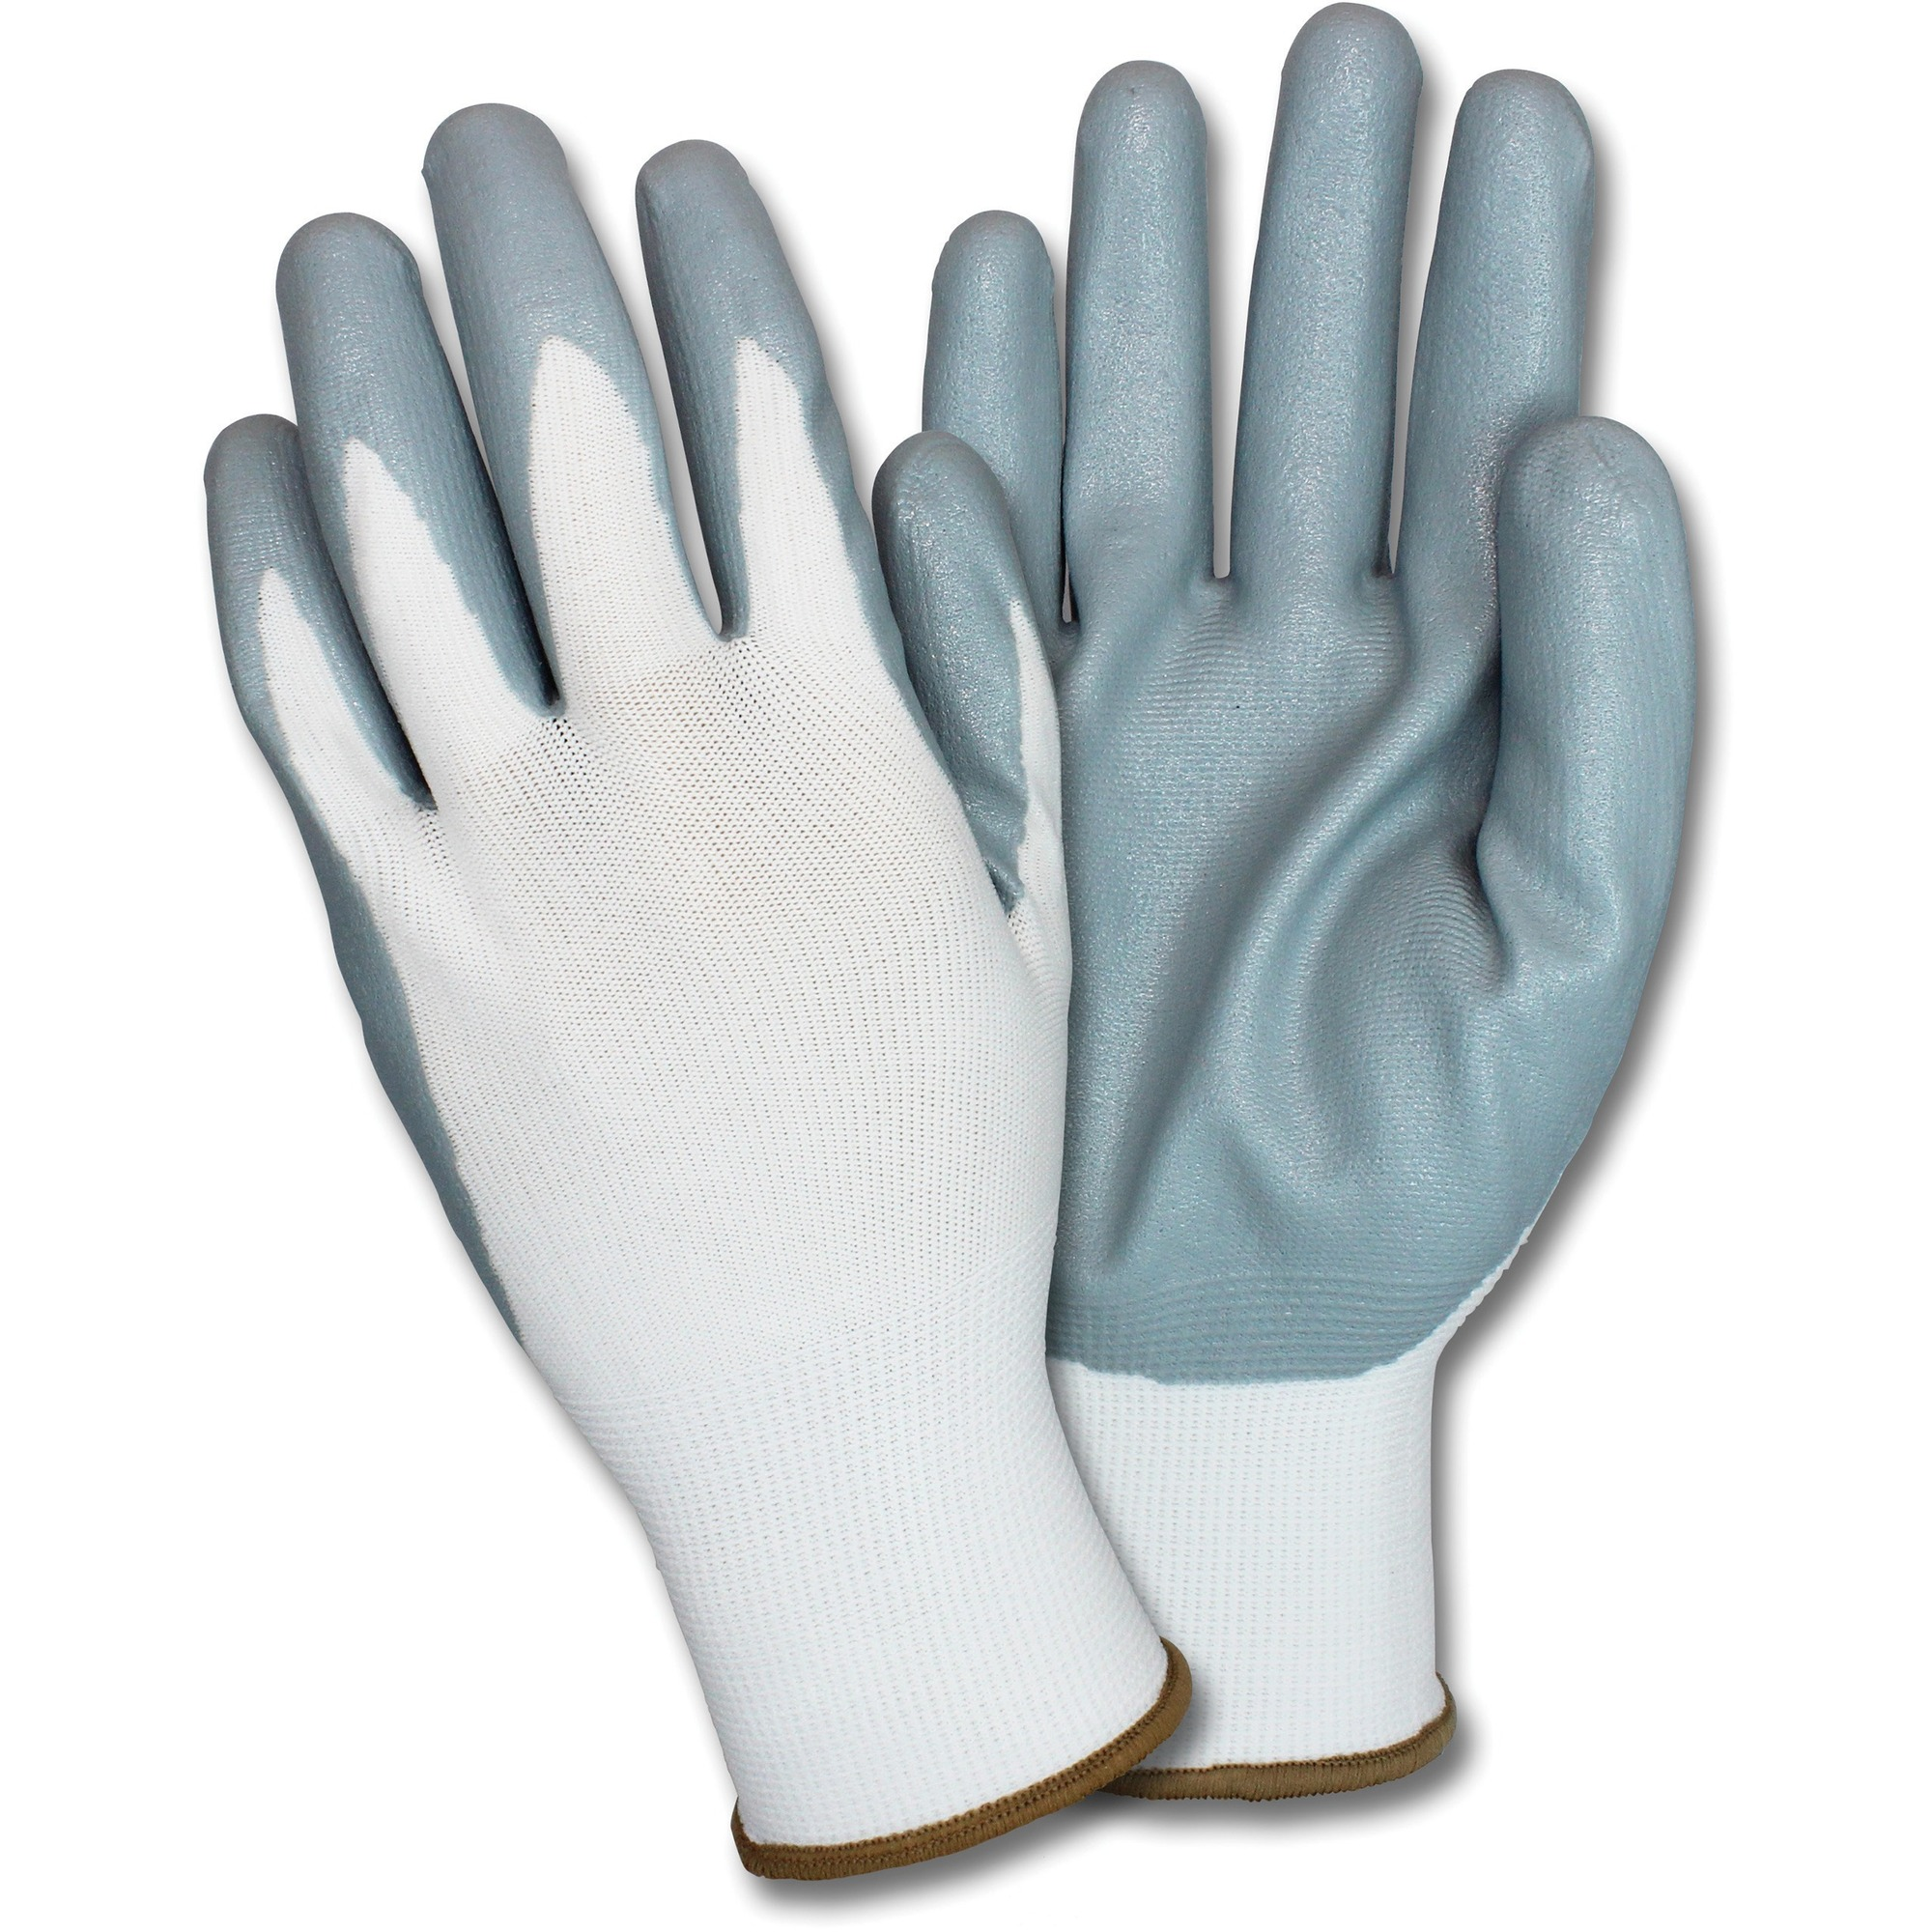 Safety Zone Nitrile Coated Knit Gloves - Hand Protection - Nitrile Coating - Large Size - White, Gray - Durable, Flexible, Breathable, Comfortable, Knitted - For Industrial - 12 / Dozen